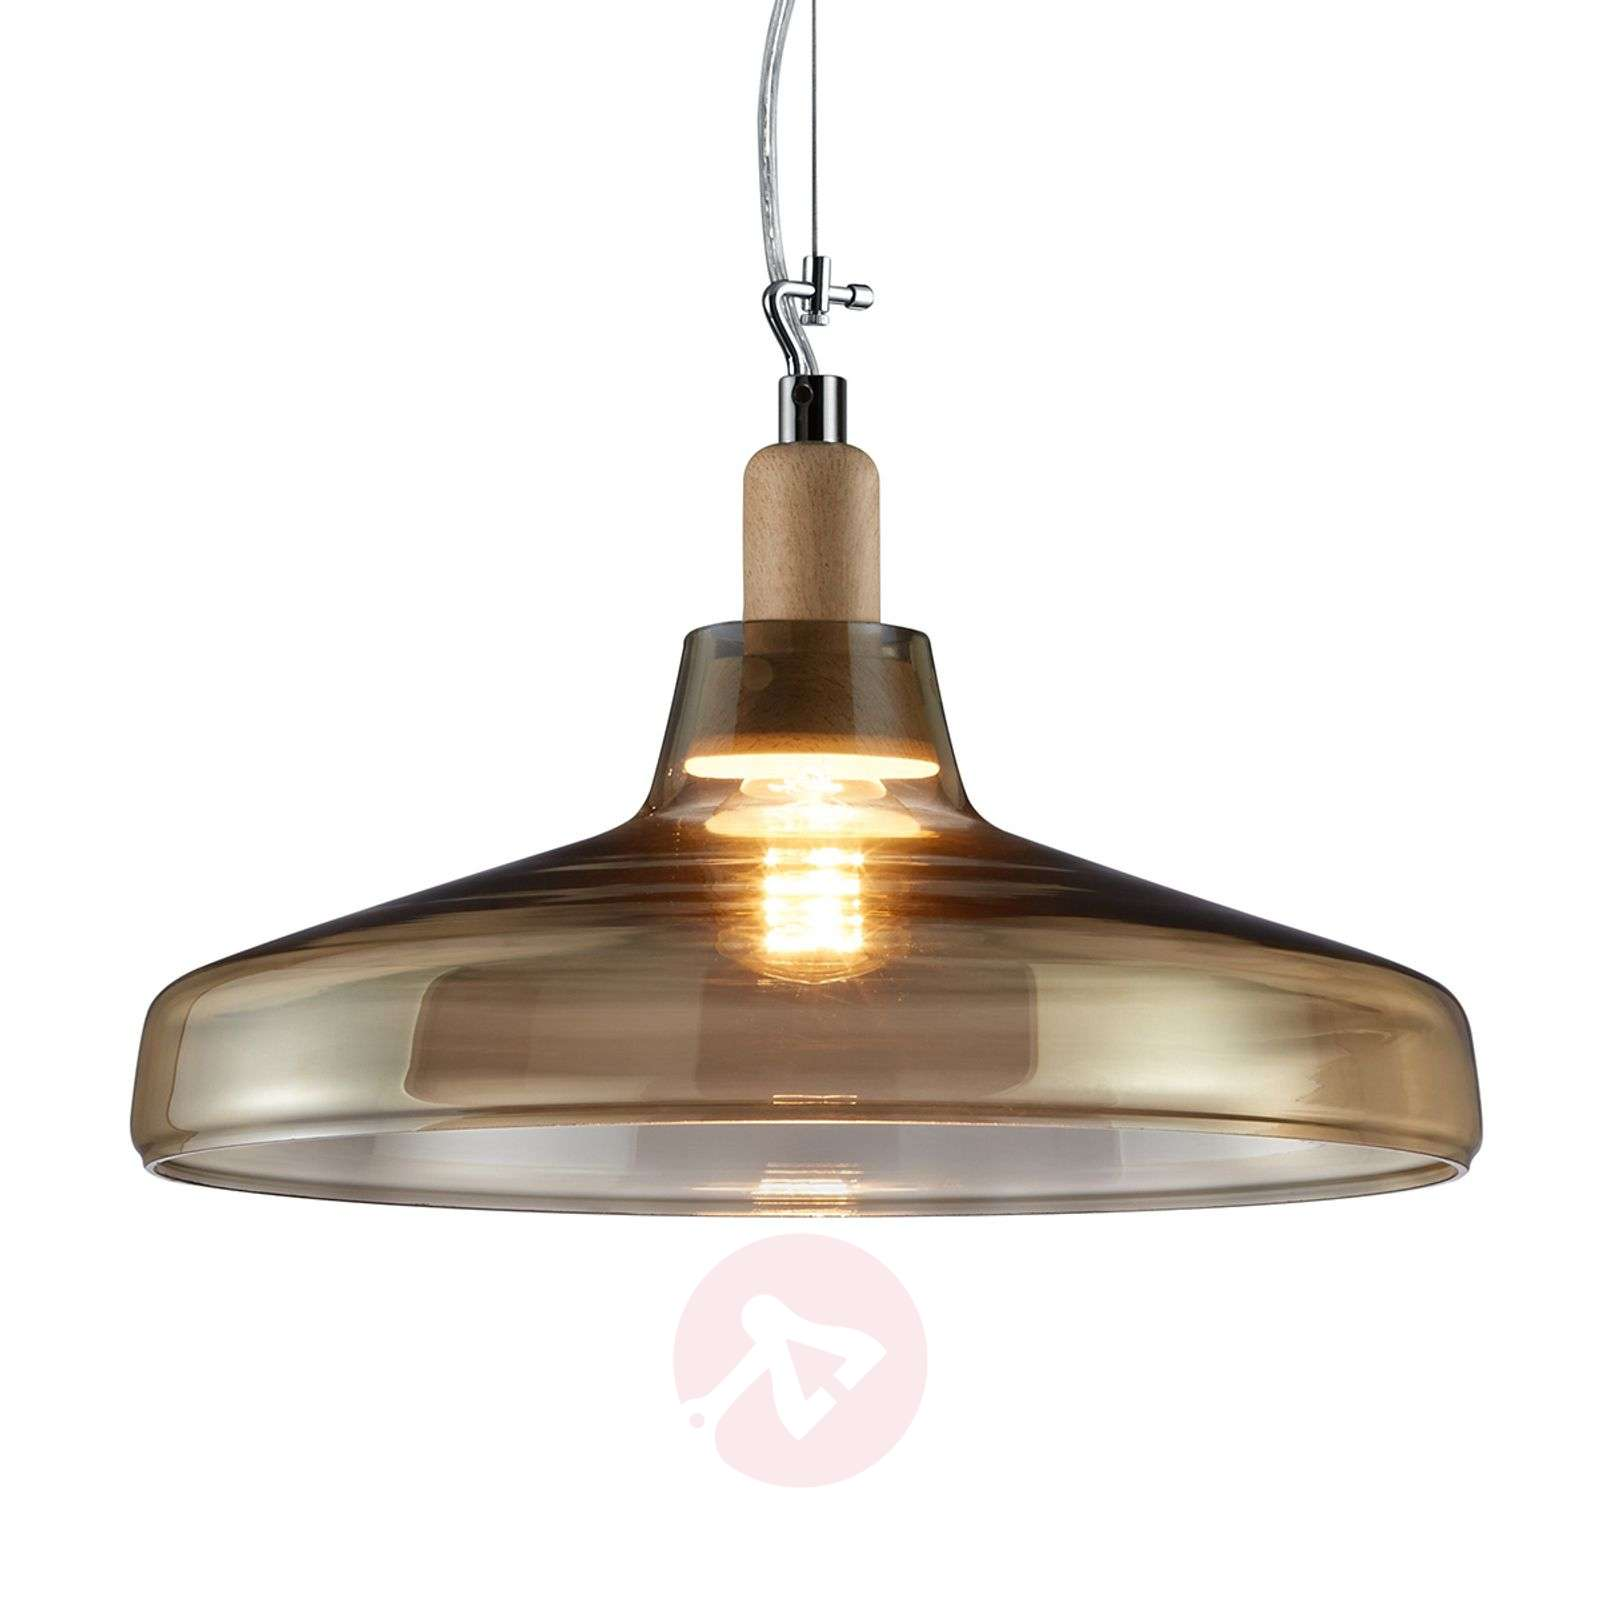 Flat Dover glass pendant light, champagne-coloured-9005105-01